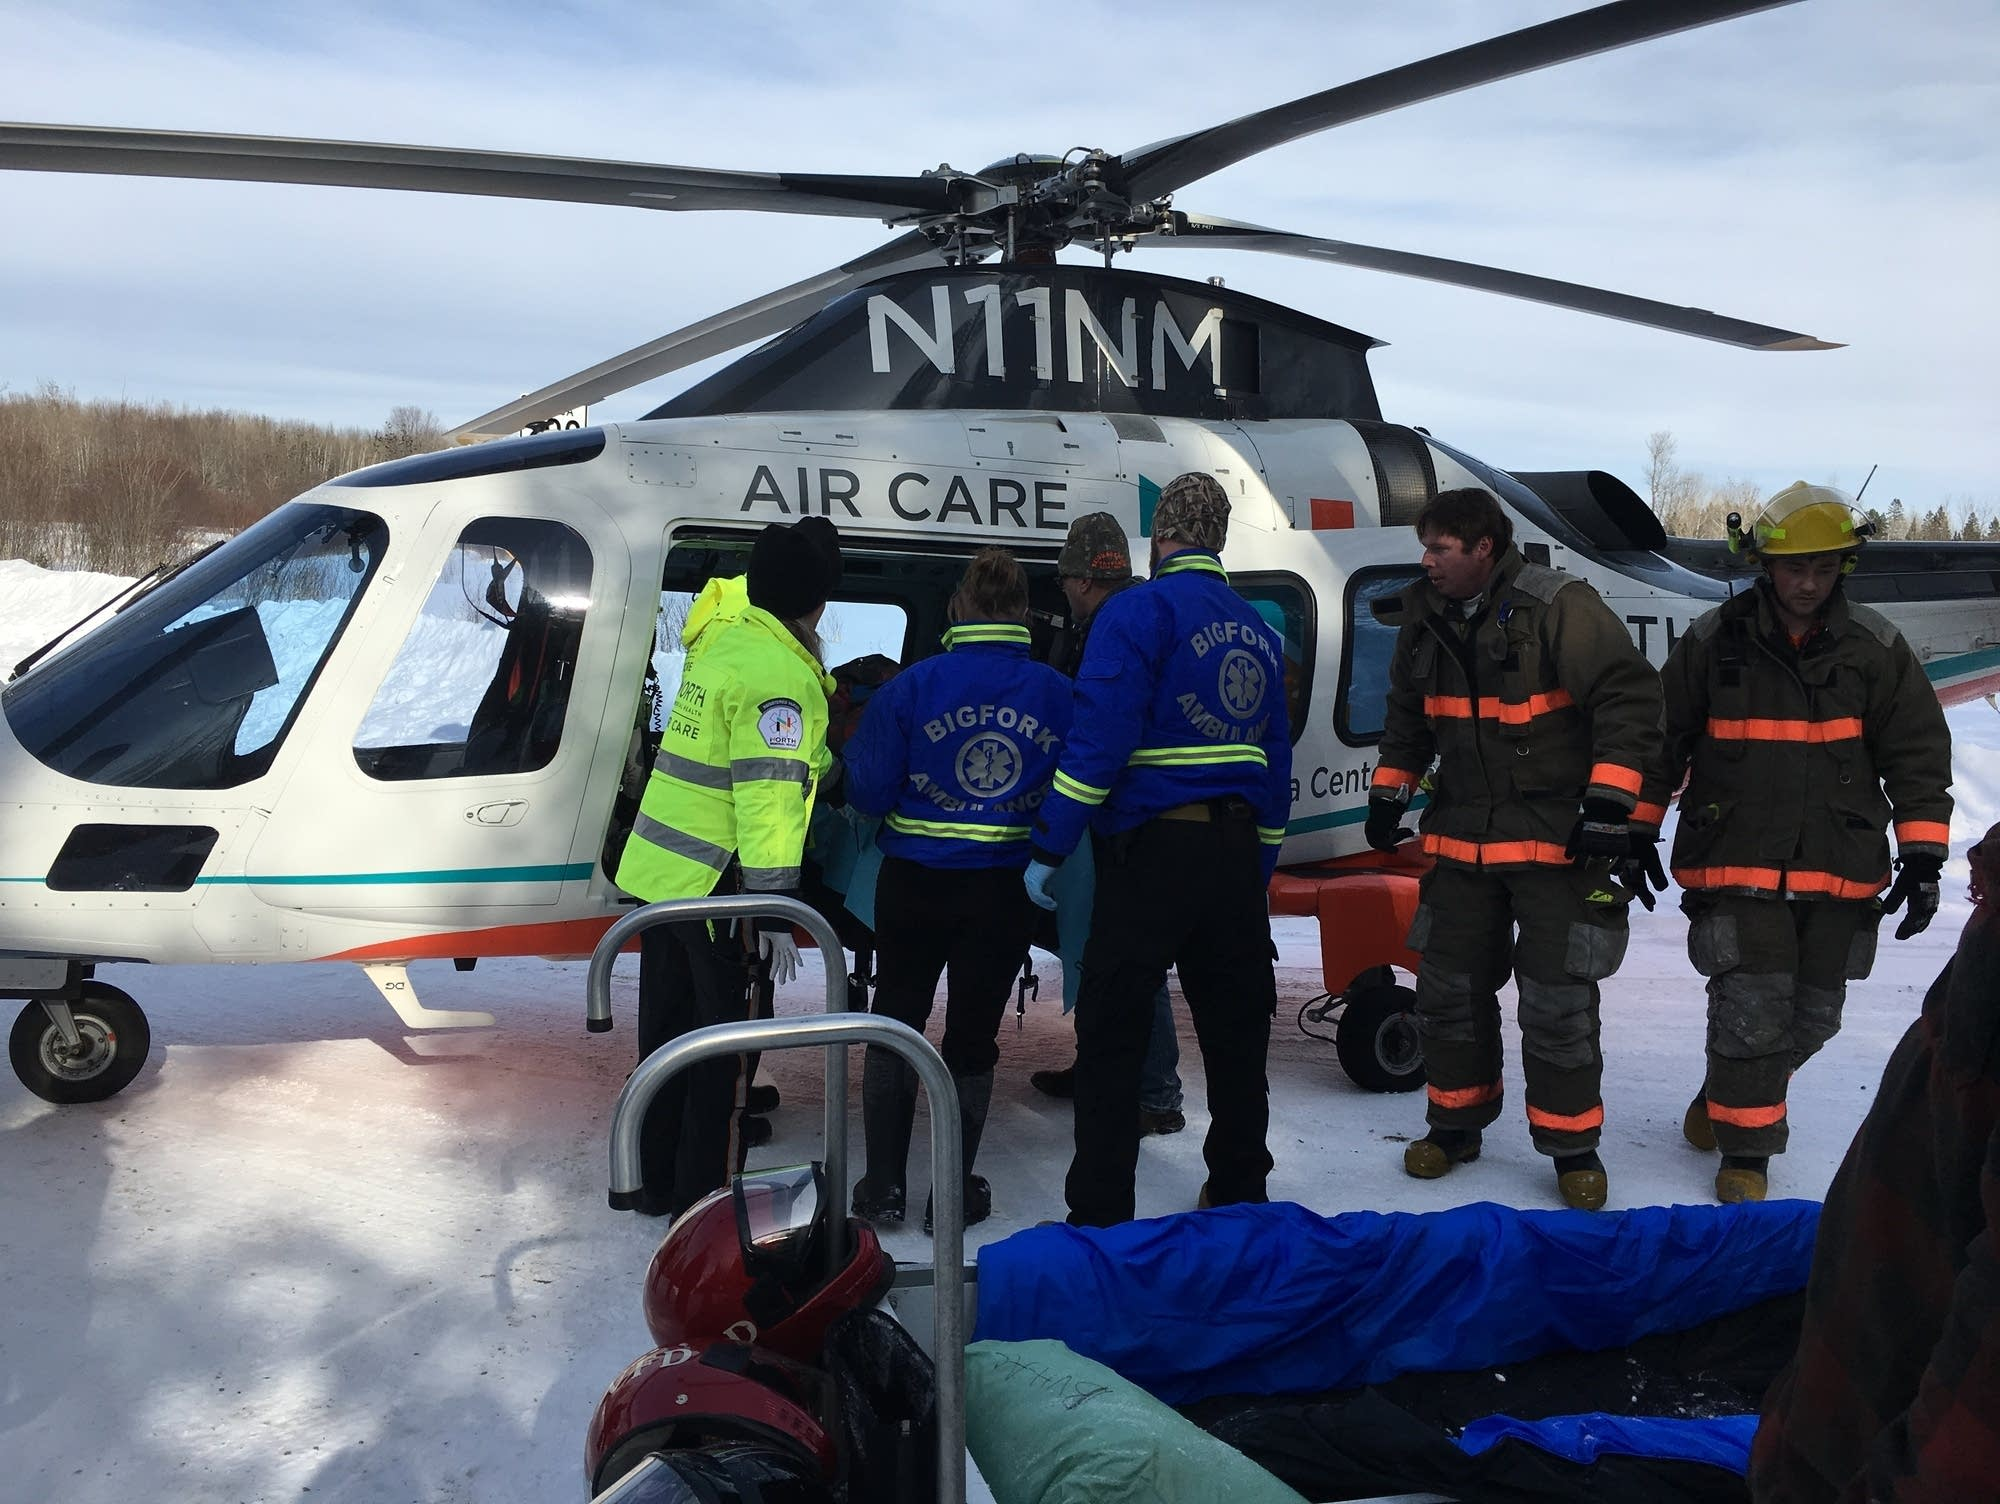 A snowmobile operator is airlifted.